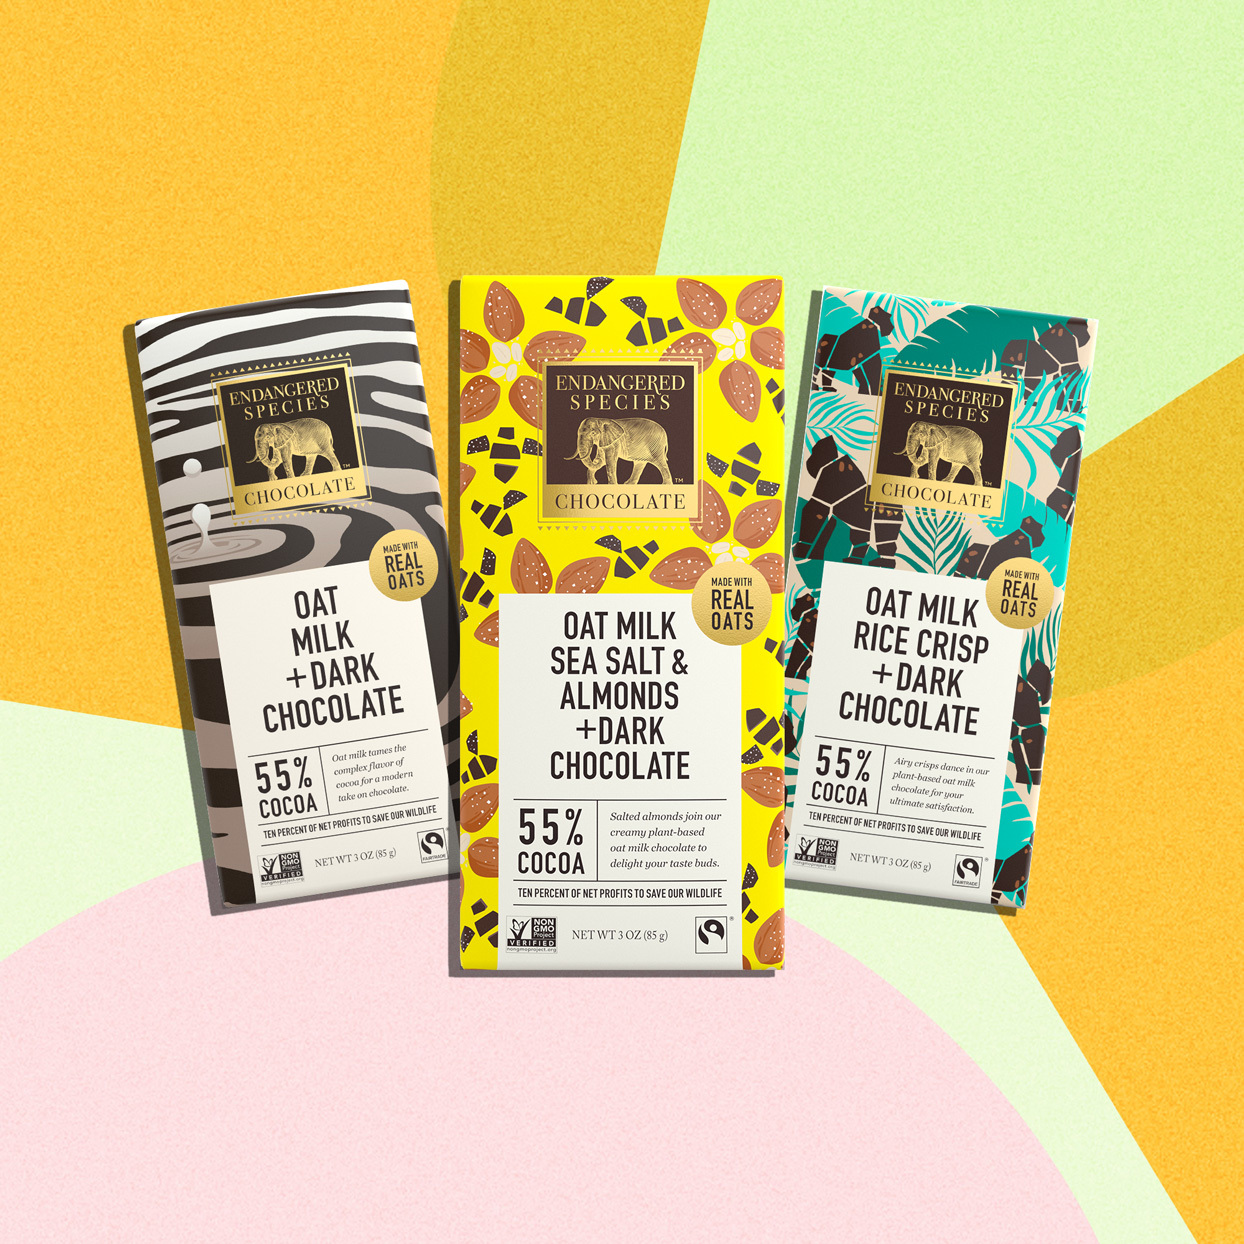 Oat Milk Chocolate Exists Now—and It's Actually Pretty Tasty